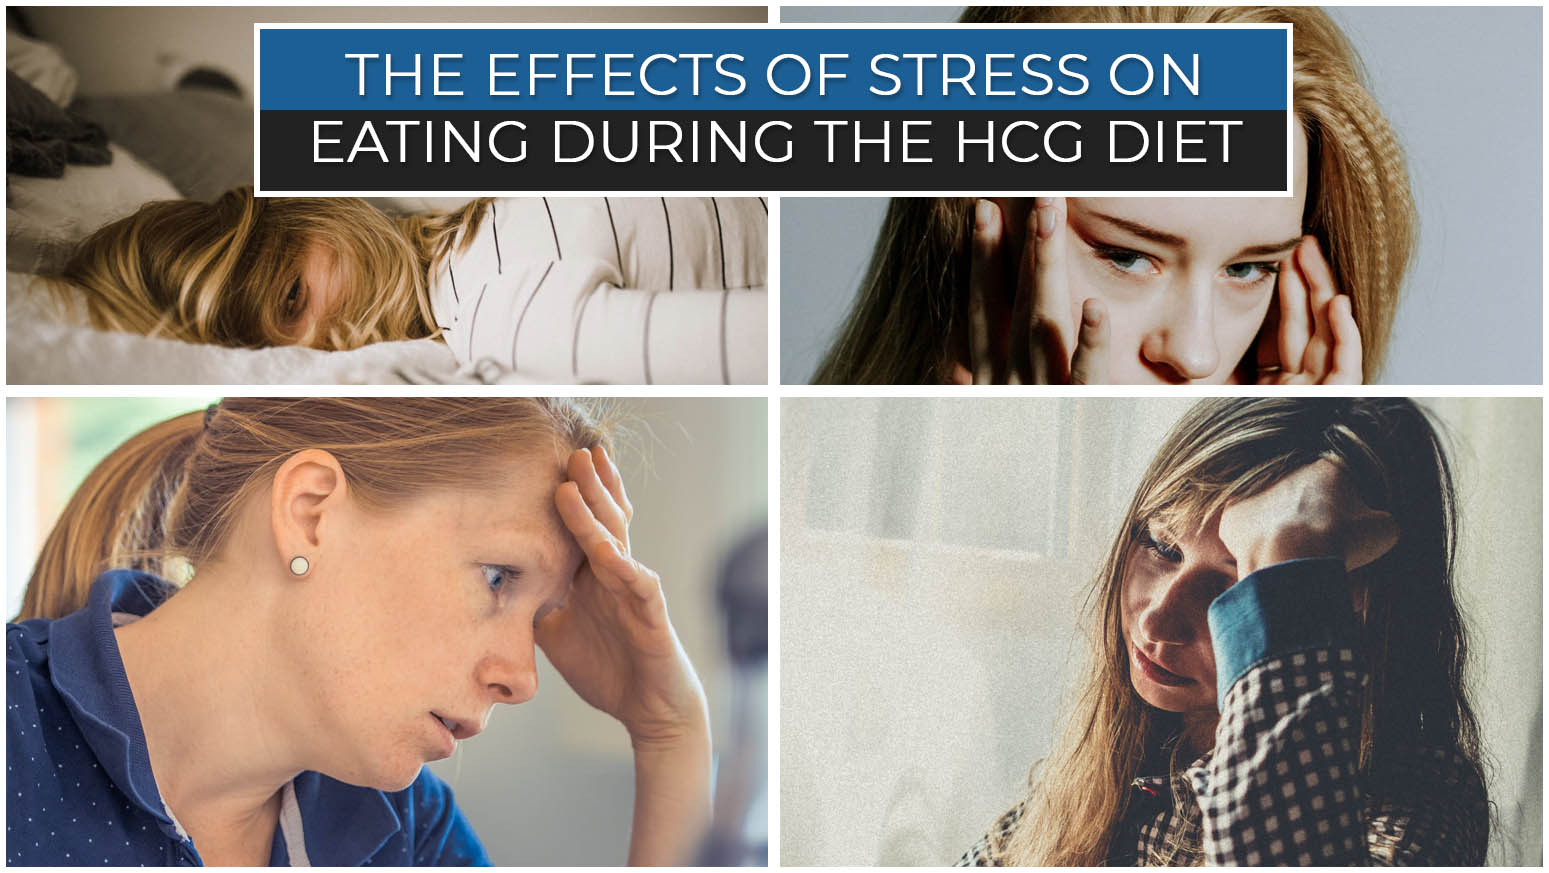 THE EFFECTS OF STRESS ON EATING DURING THE HCG DIET